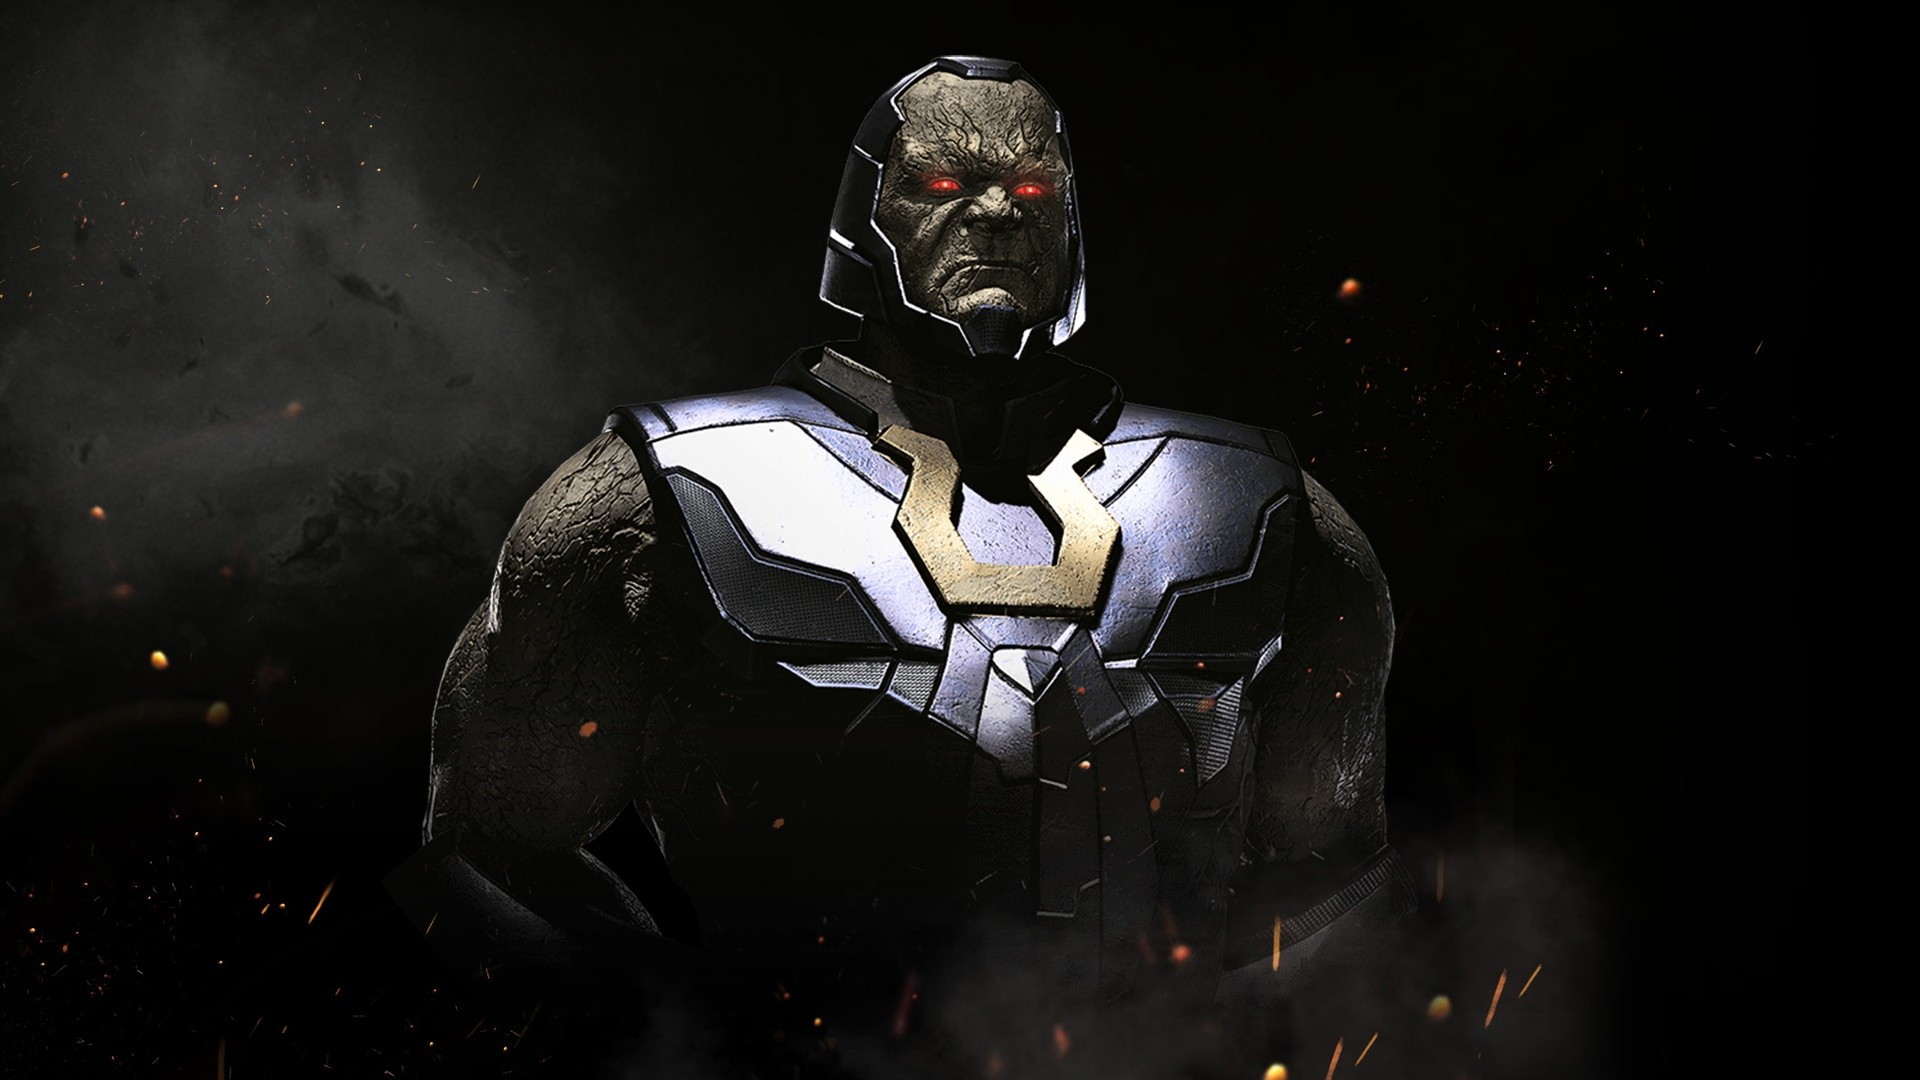 Darkseid Wallpaper 77 images 1920x1080